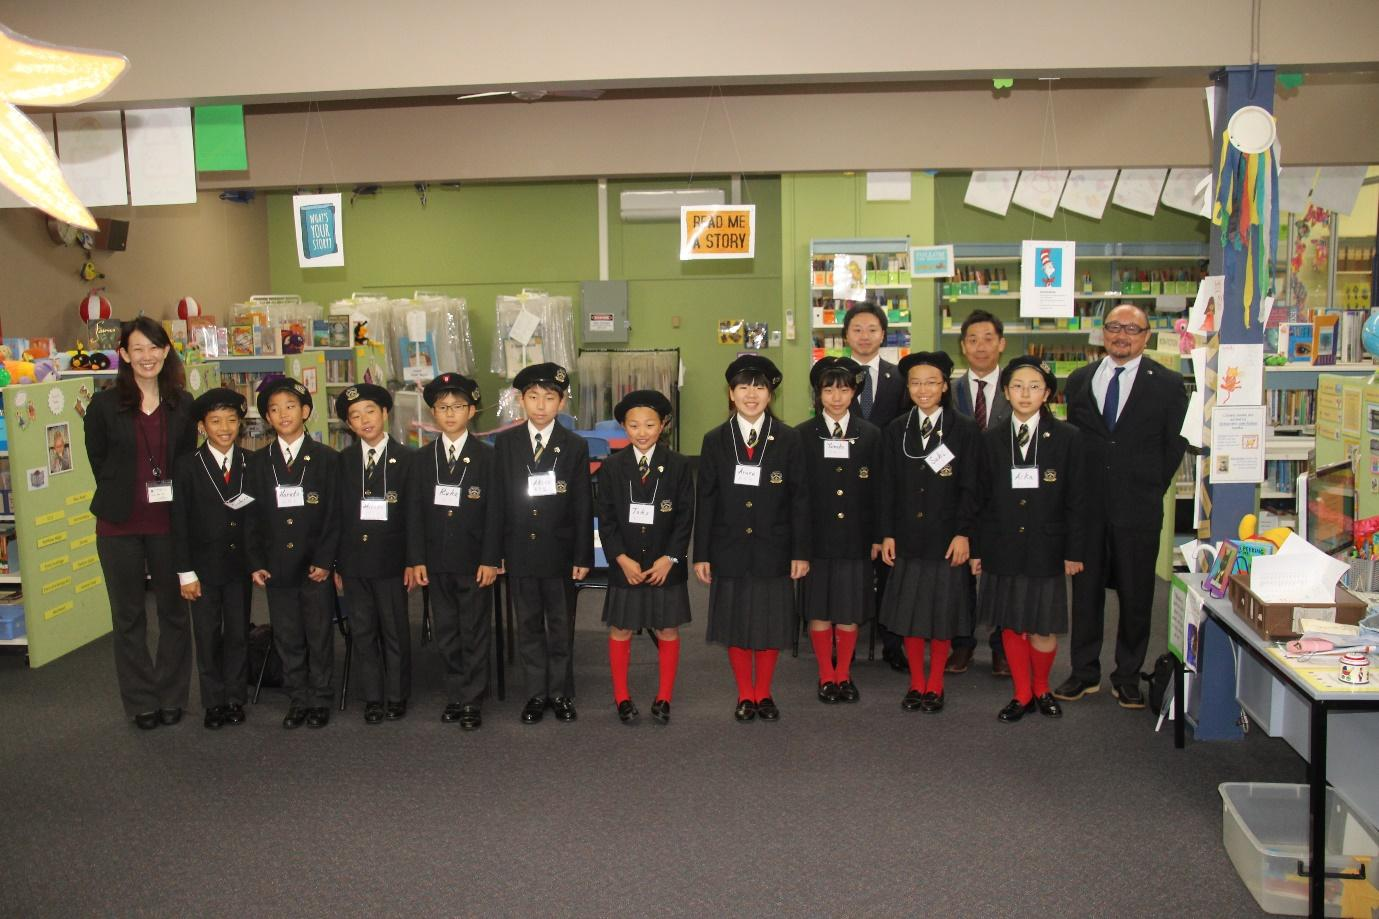 F:\Hiromi\Branch Out 2017\2017 Lily Vale Photos\IMG_9829.JPG